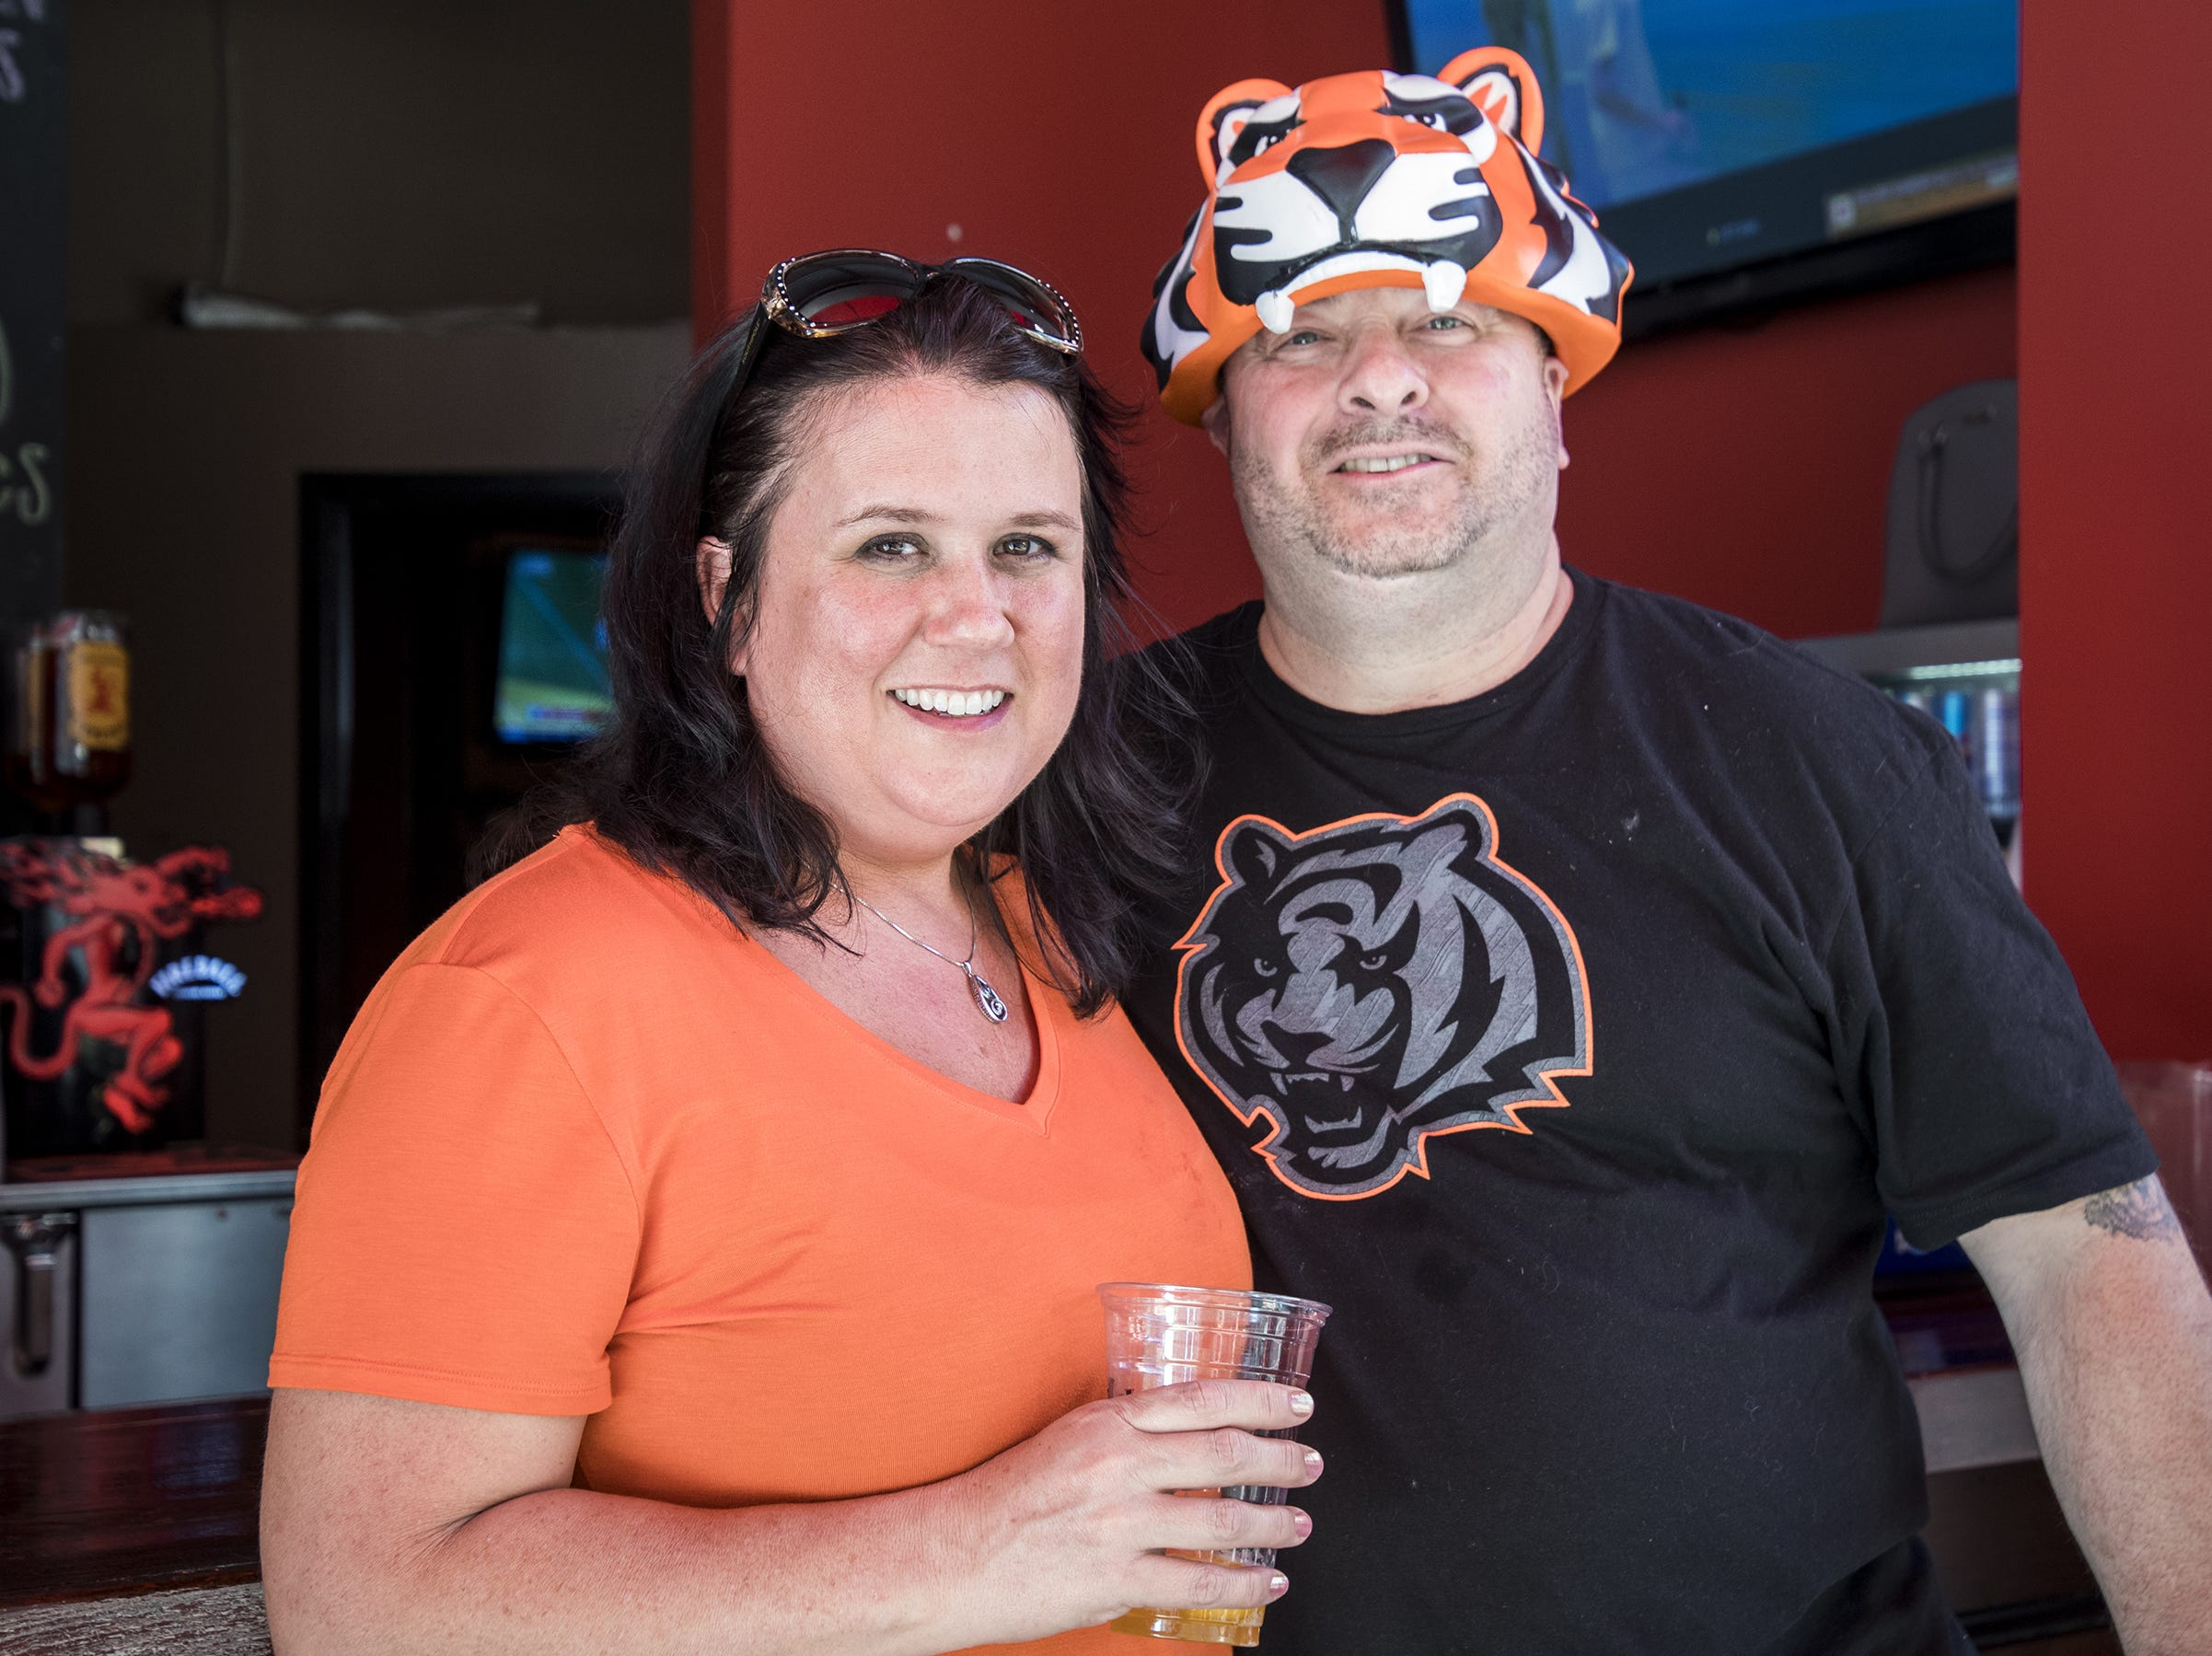 Michelle and Ken Deland of Buffalo New York grab a drink in the Bud Light Tailgate zone before the Bengals game against the Baltimore Ravens Thursday, September 13, 2018 in Cincinnati, Ohio.